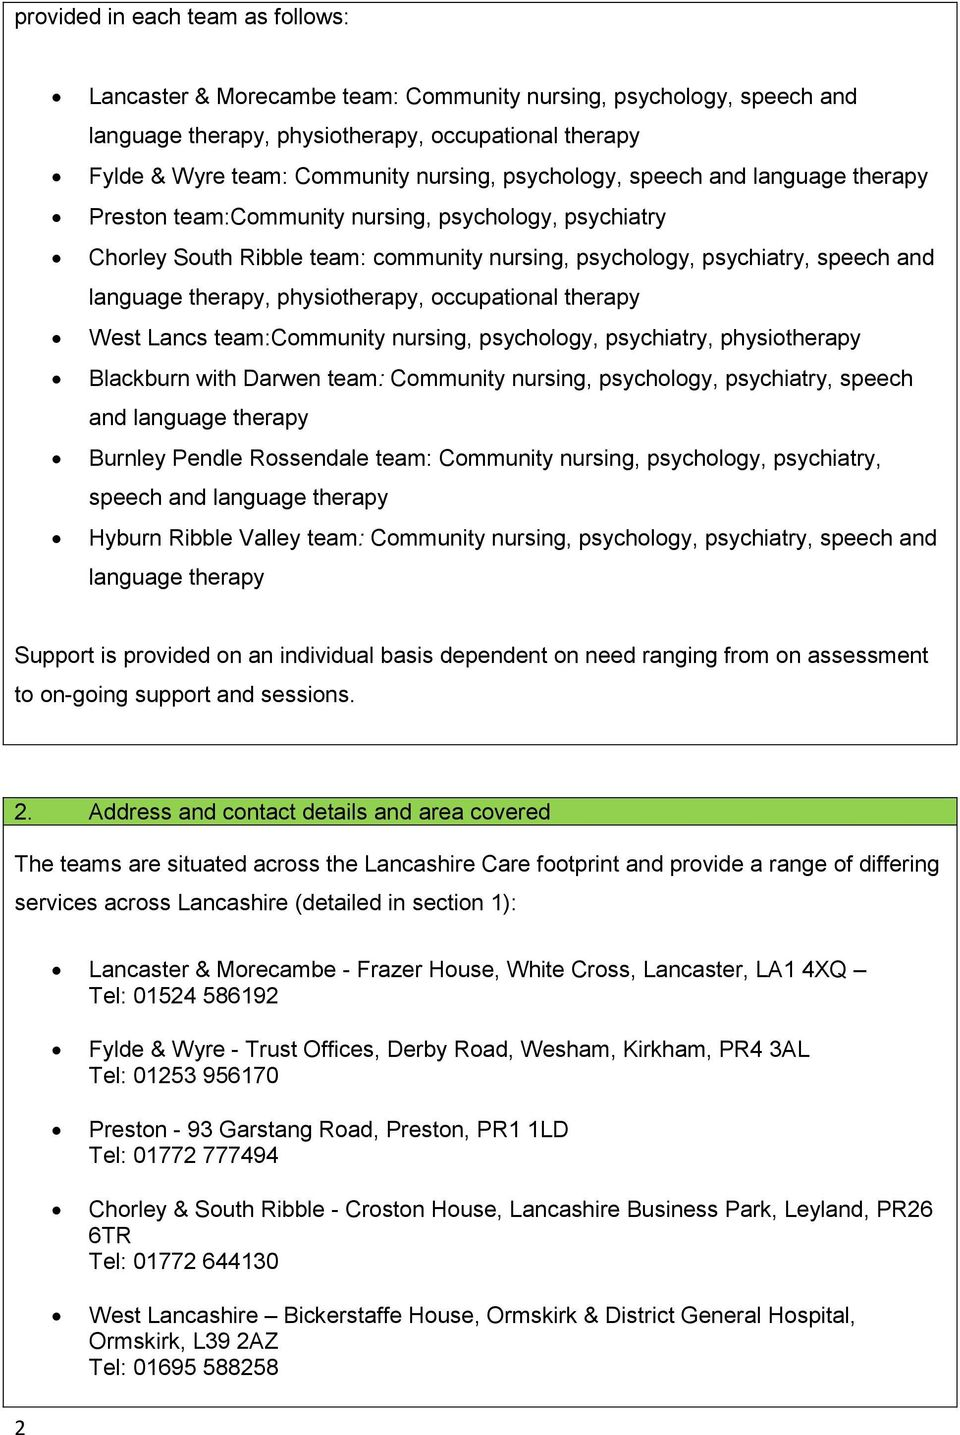 physiotherapy, occupational therapy West Lancs team:community nursing, psychology, psychiatry, physiotherapy Blackburn with Darwen team: Community nursing, psychology, psychiatry, speech and language